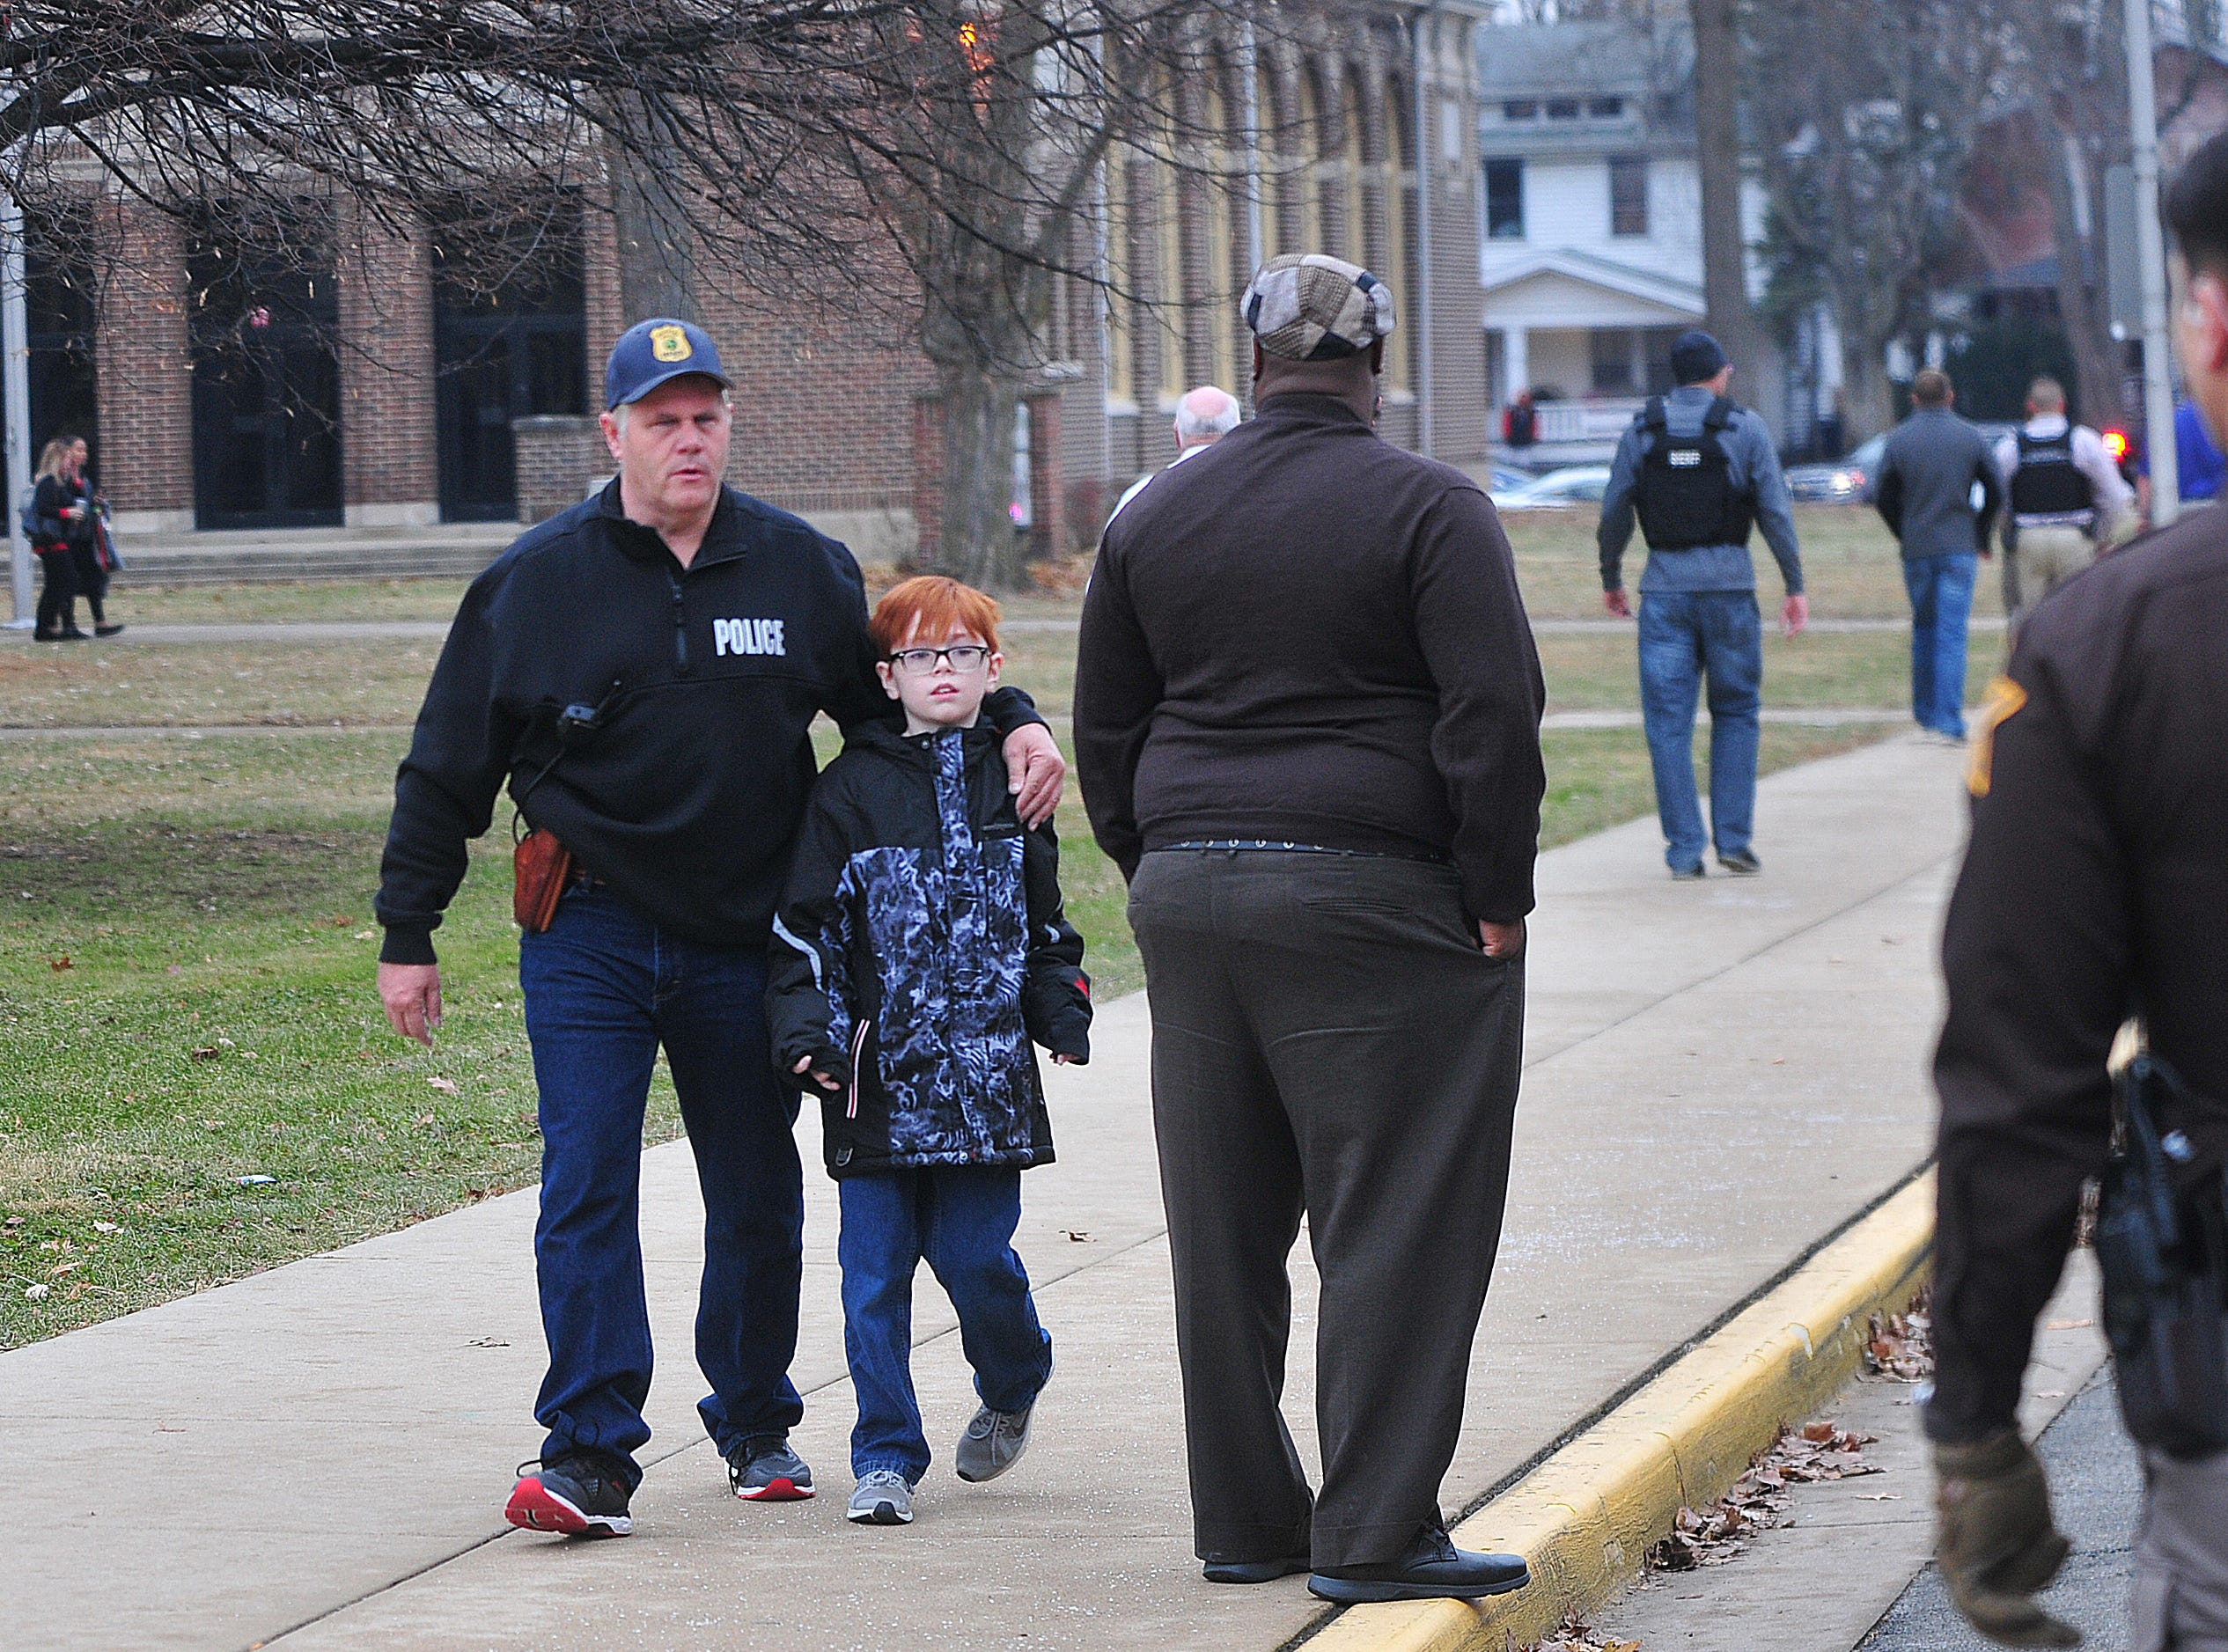 Police escort students out of Dennis Intermediate School after police exchanged gunfire with a suspect near Dennis on Thursday morning. The suspect was confirmed as the only fatality.